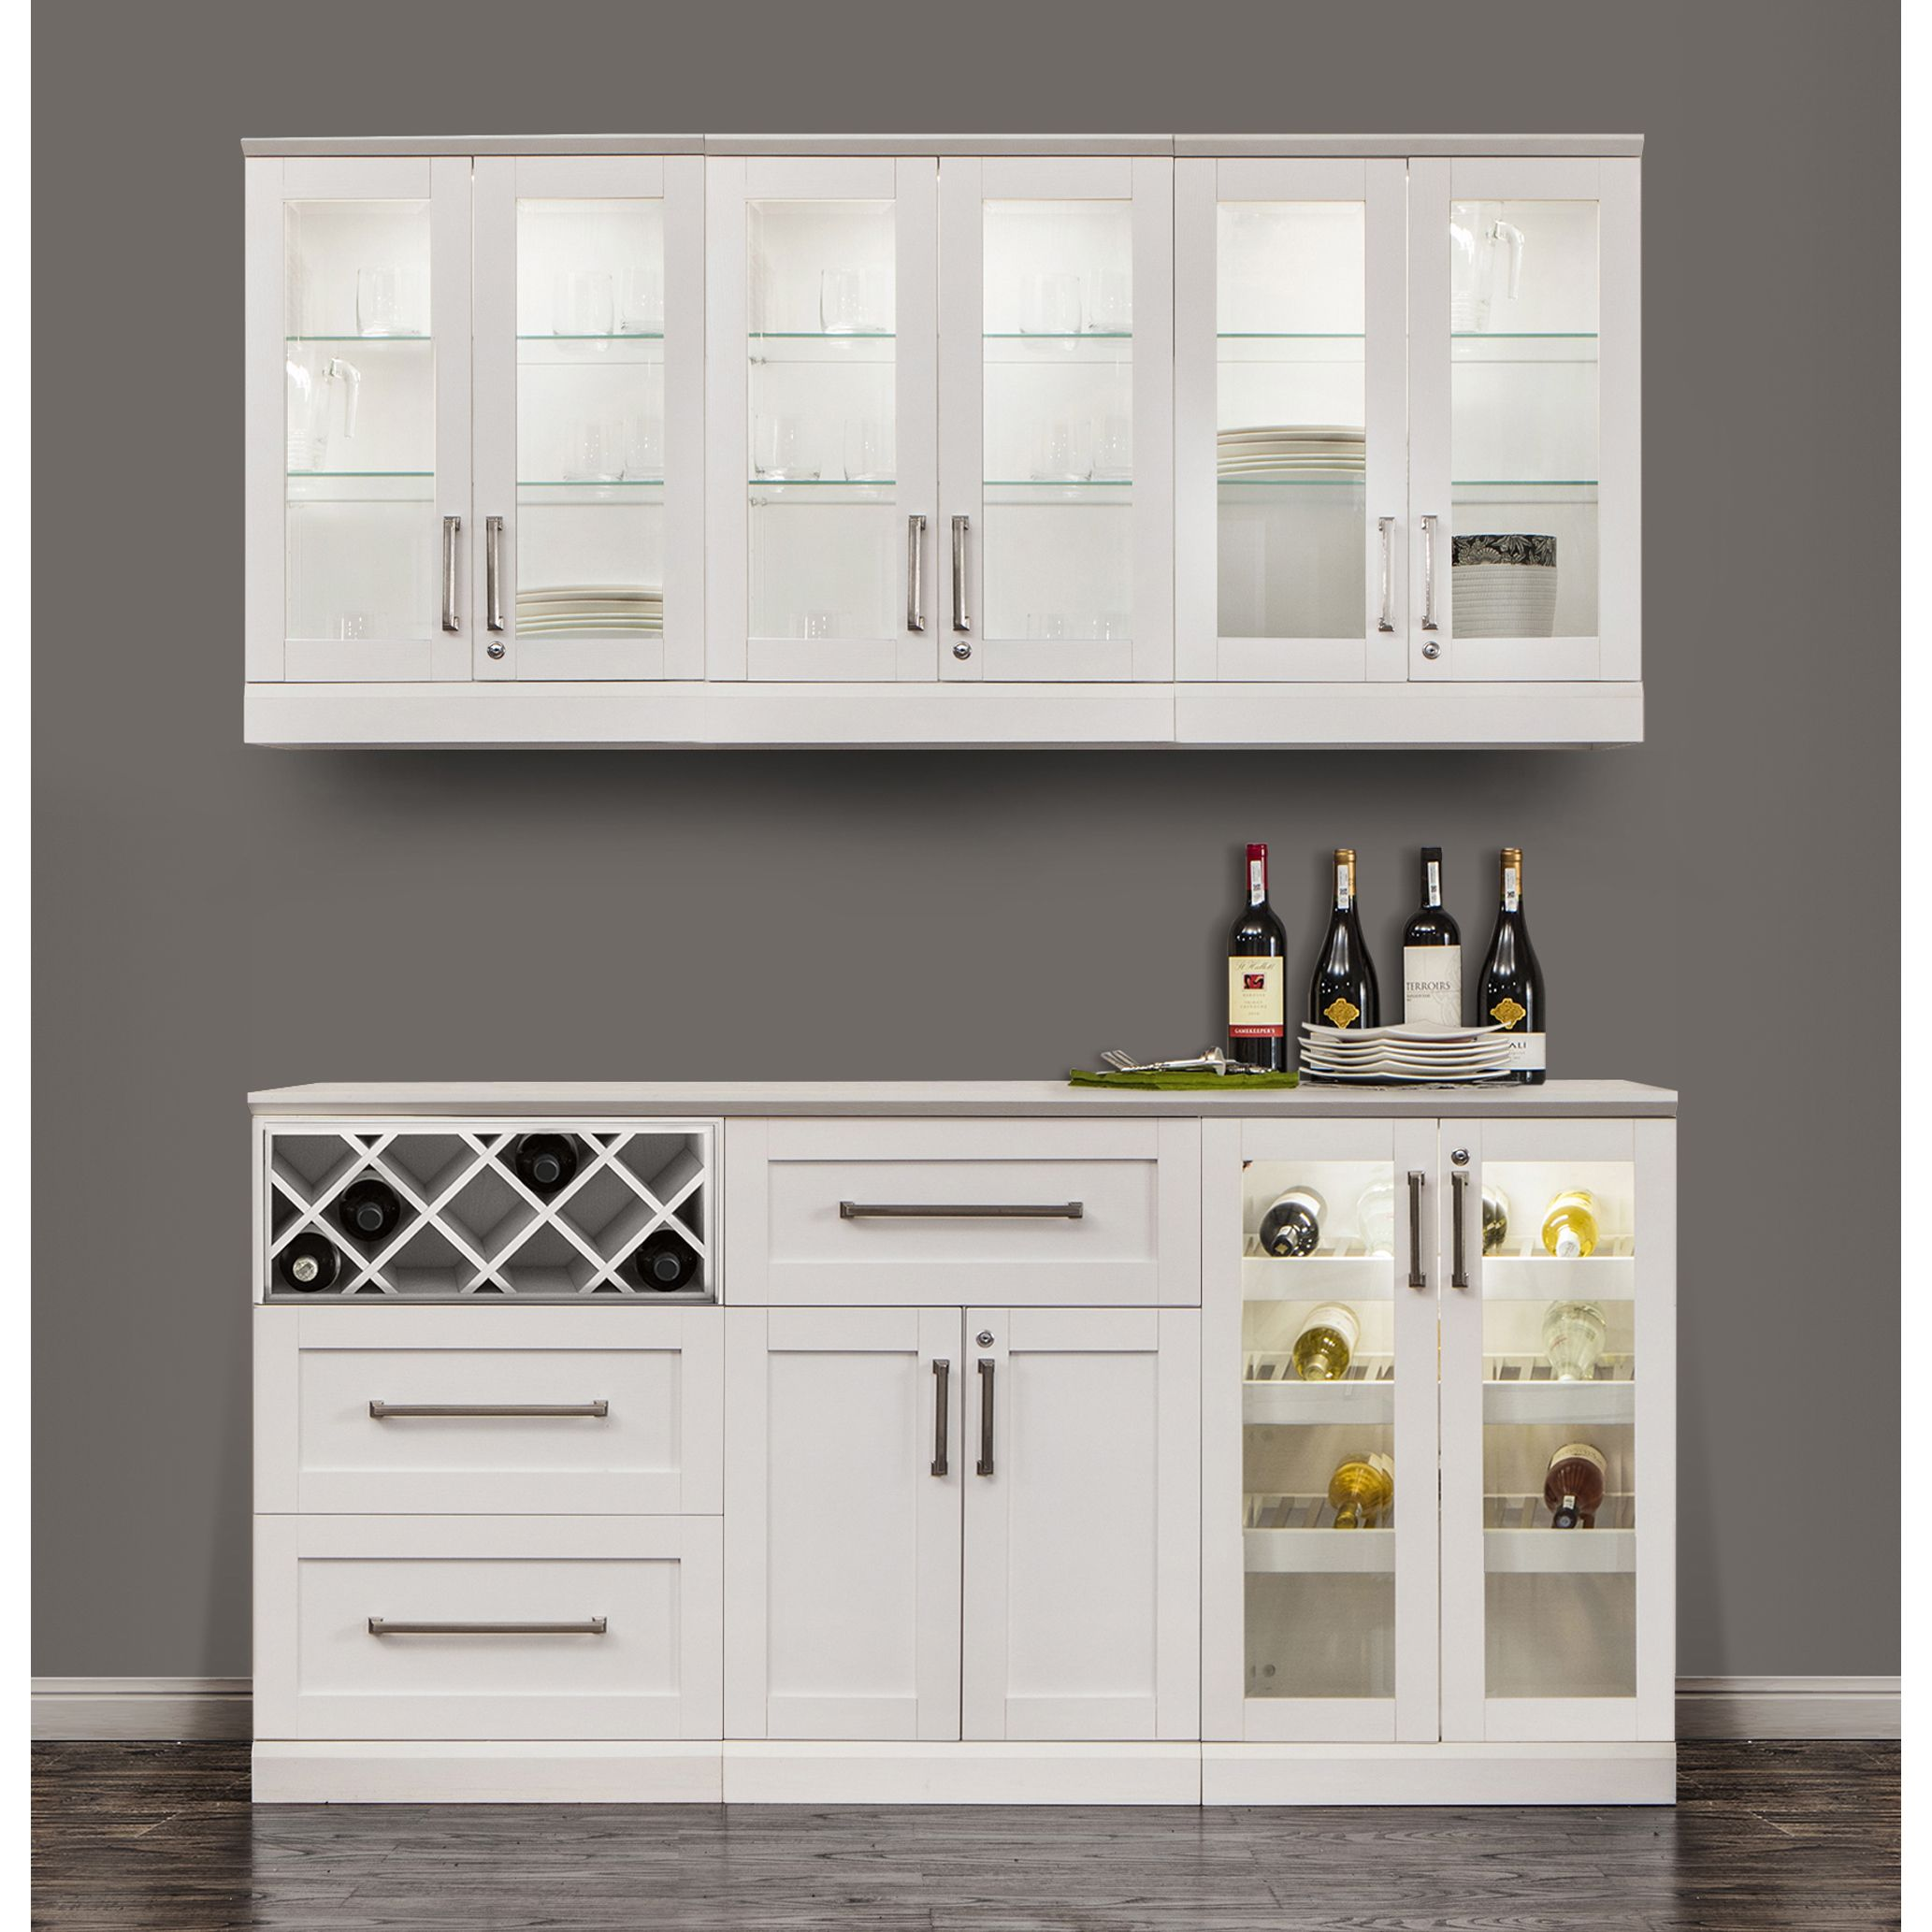 Newage Products Home Bar Shaker Style 7 Piece Cabinet System